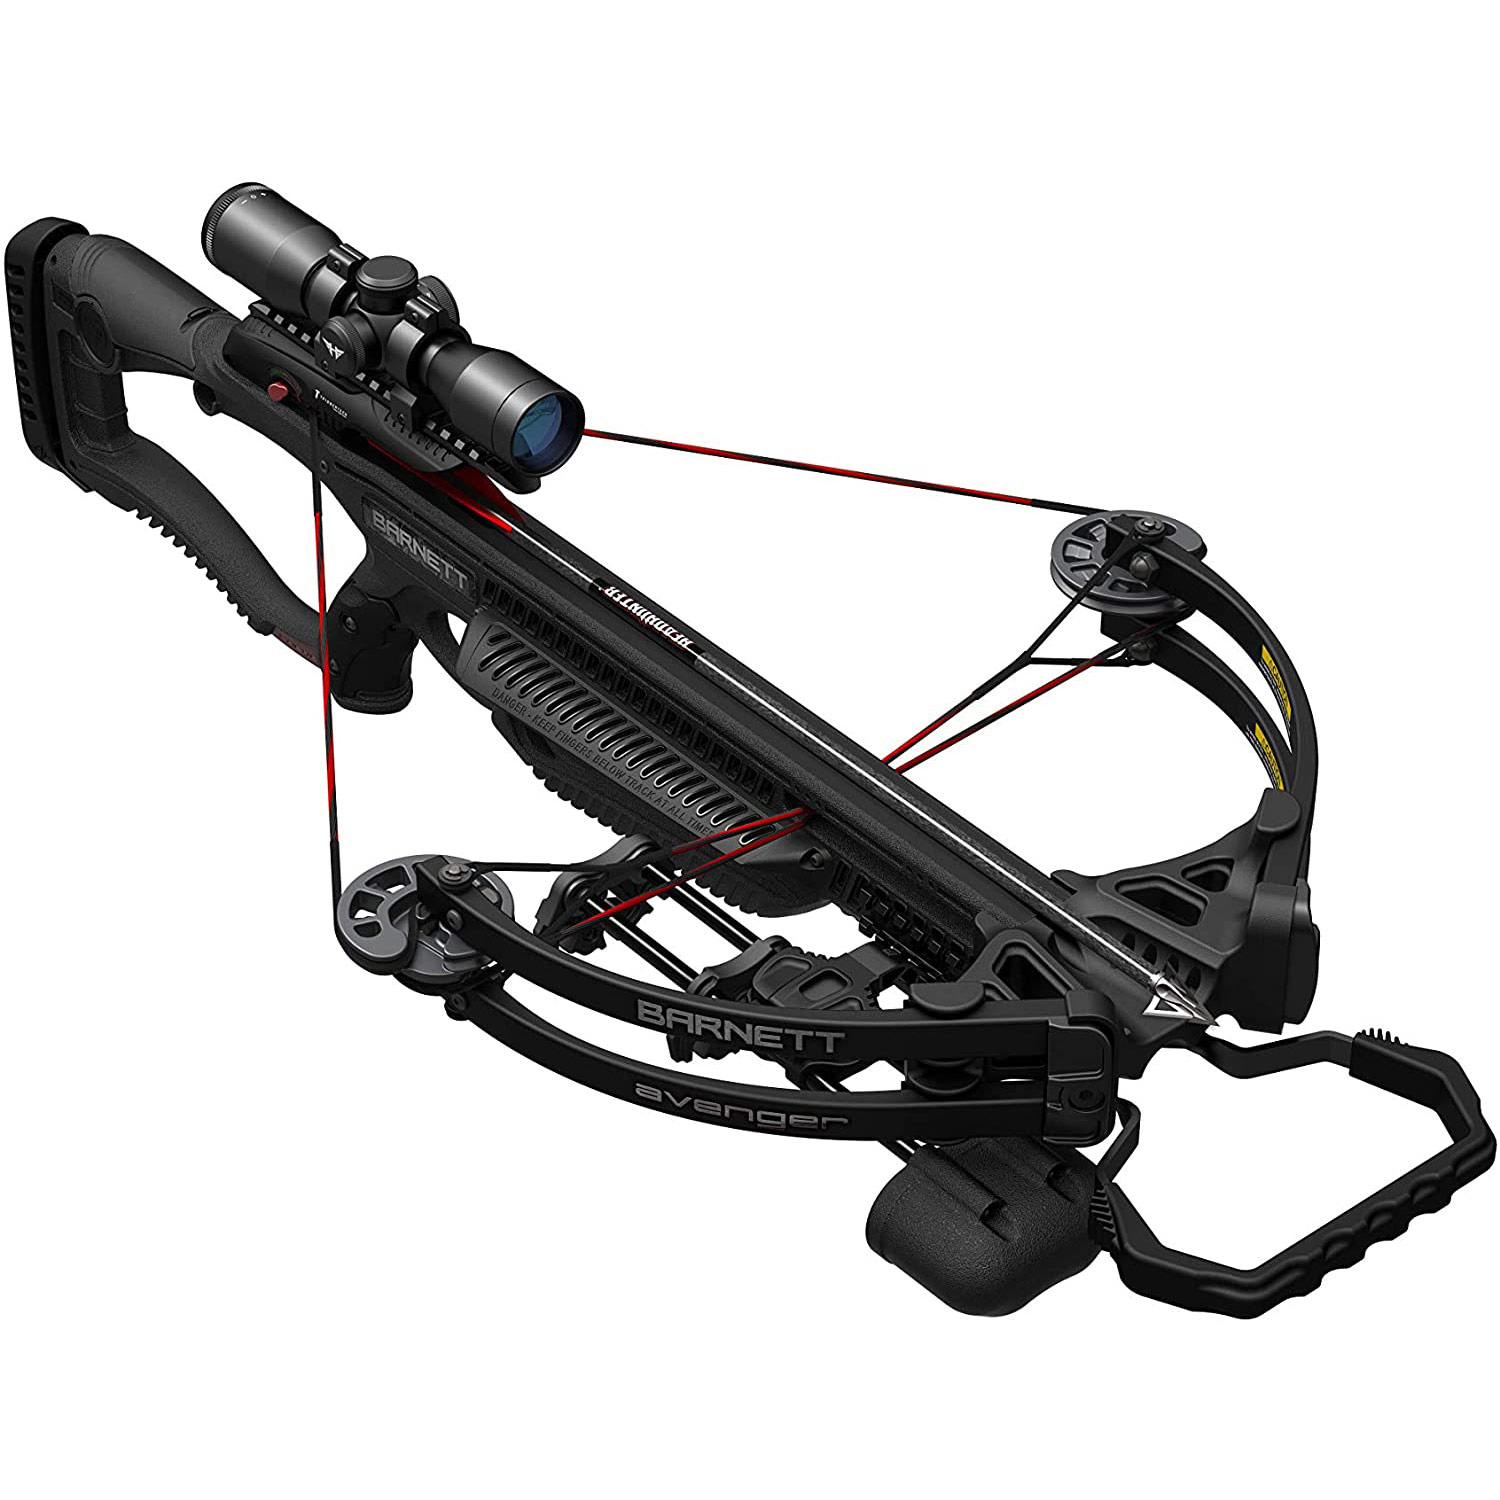 Barnett Avenger Recruit Crossbow Review 2021